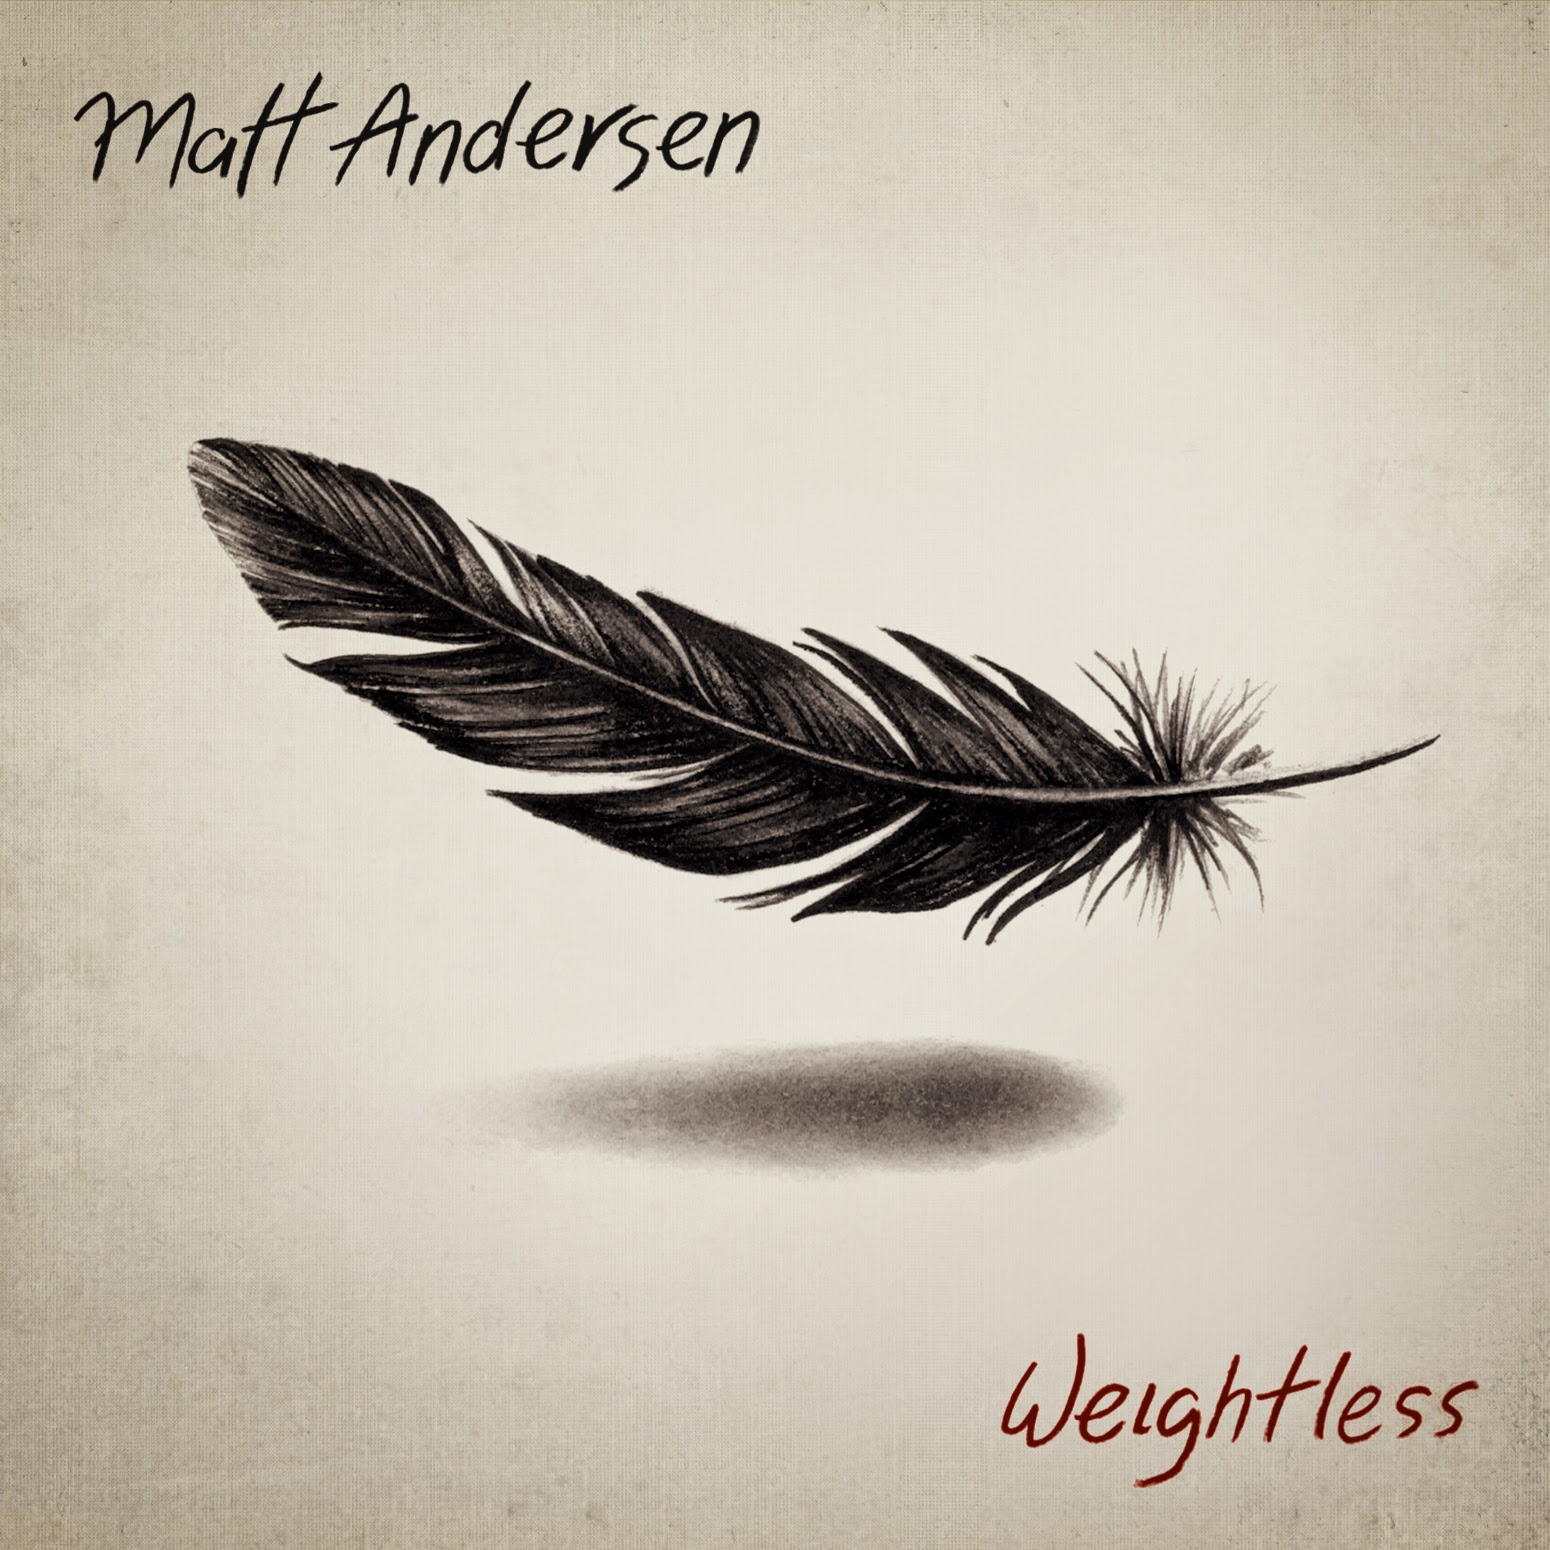 http://www.emusic.com/album/matt-andersen/weightless/14709225/